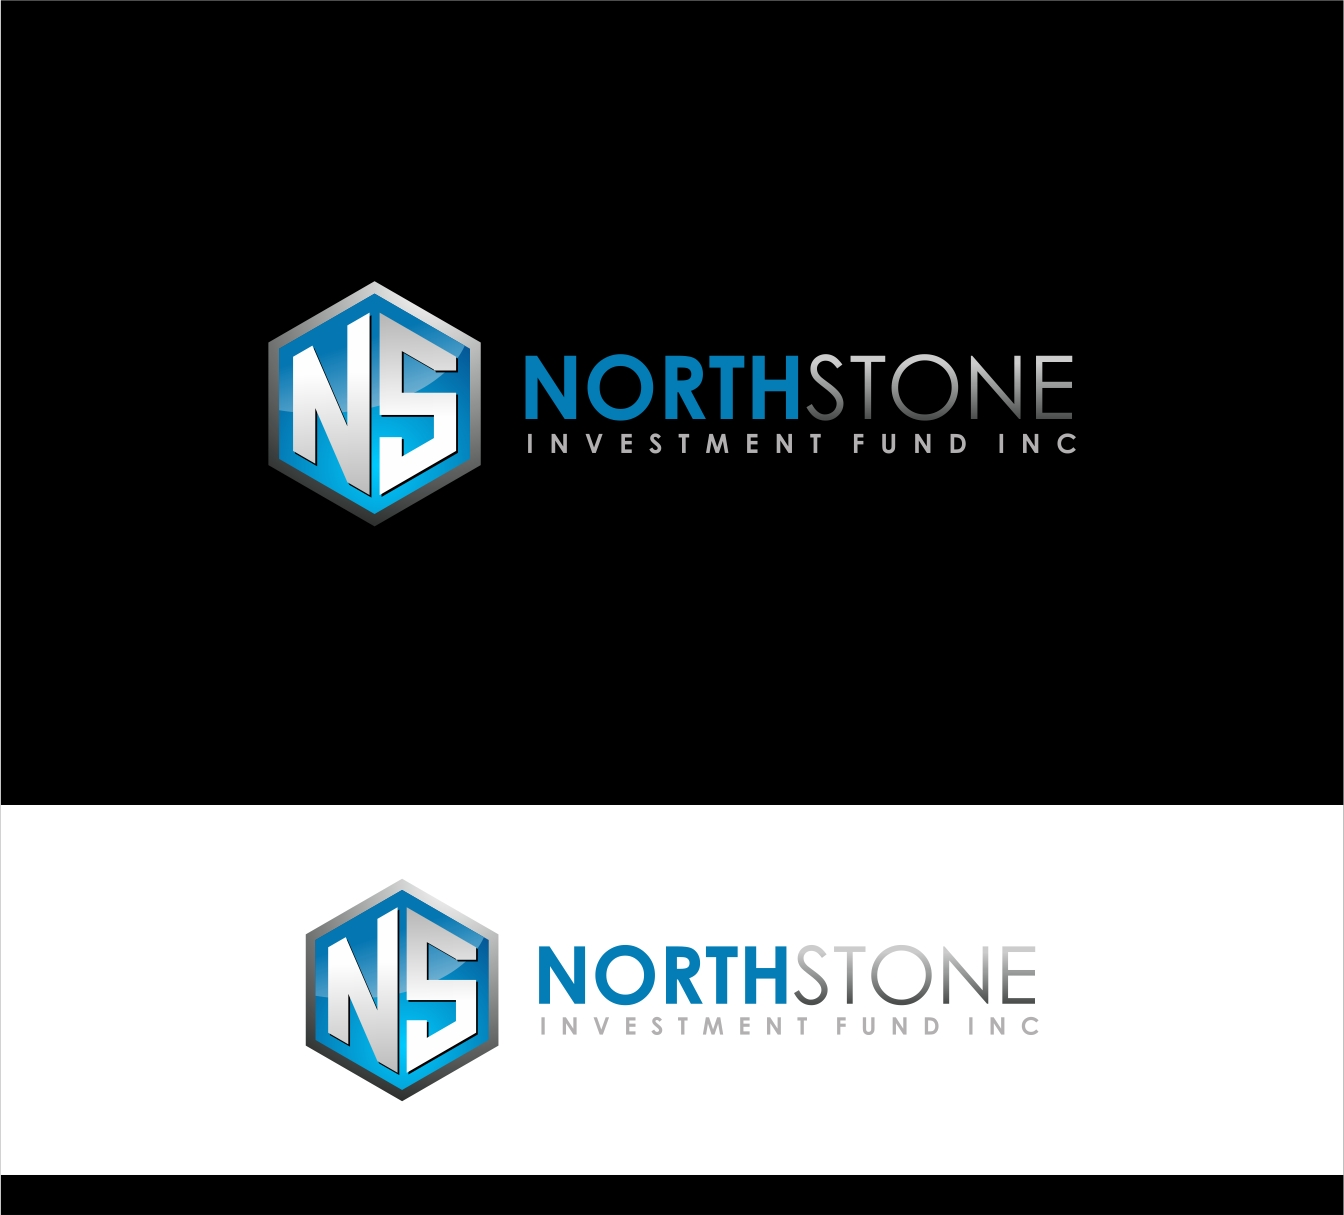 Logo Design by haidu - Entry No. 213 in the Logo Design Contest Unique Logo Design Wanted for NorthStone Investment Fund Inc.